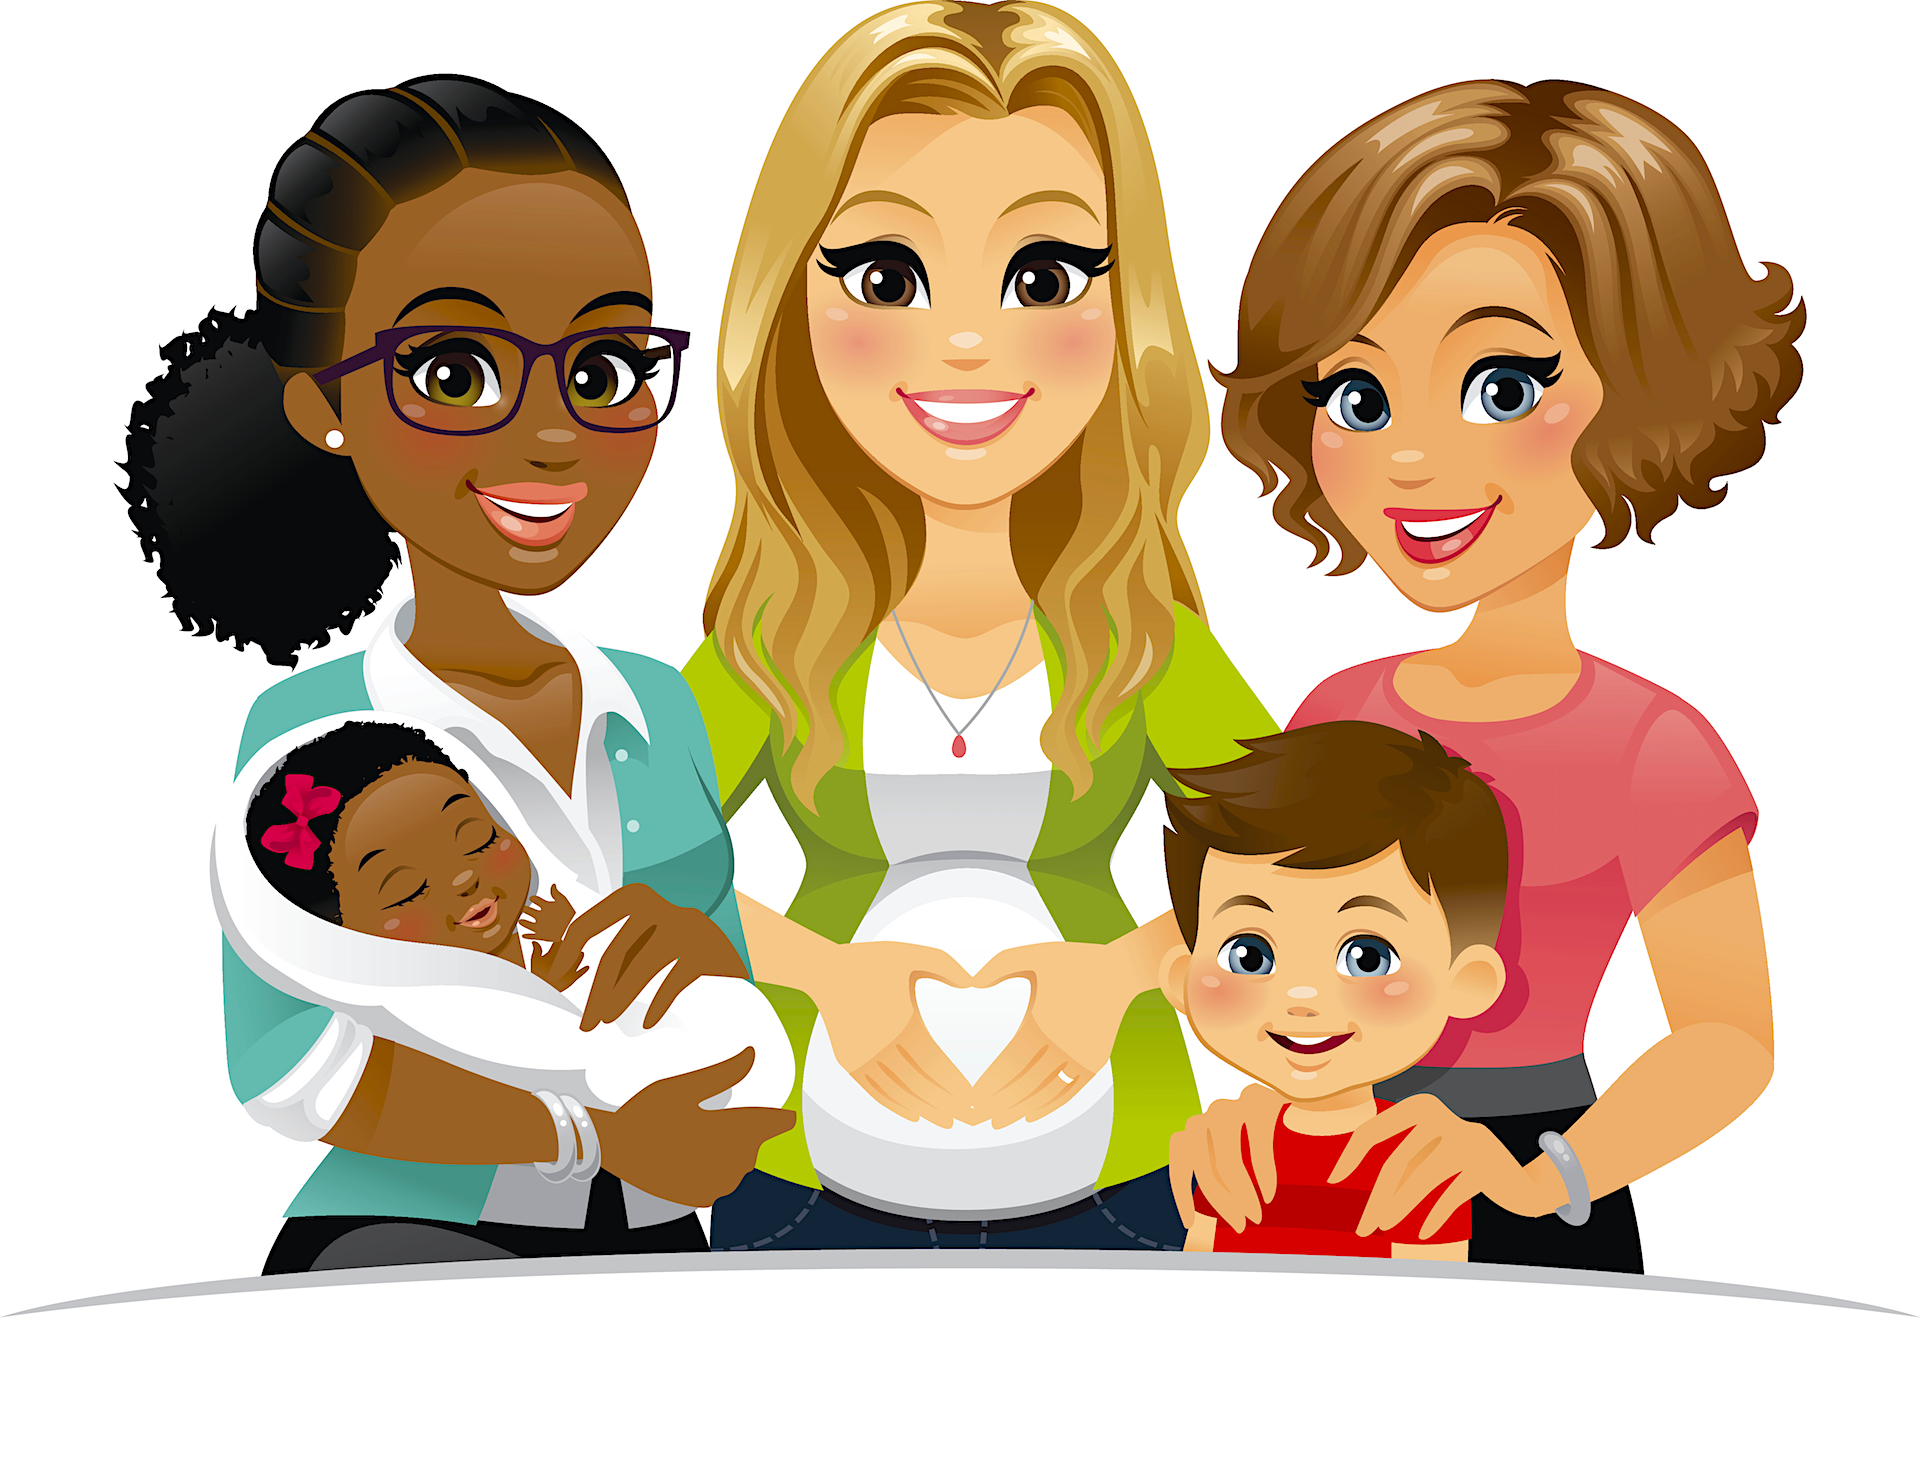 Best Pediatric Doctor for Expecting Parent, Newborn, Infant, Toddler, and School Age Child in Alpharetta, Old Milton, Roswell, Cumming, and In My Neighborhood